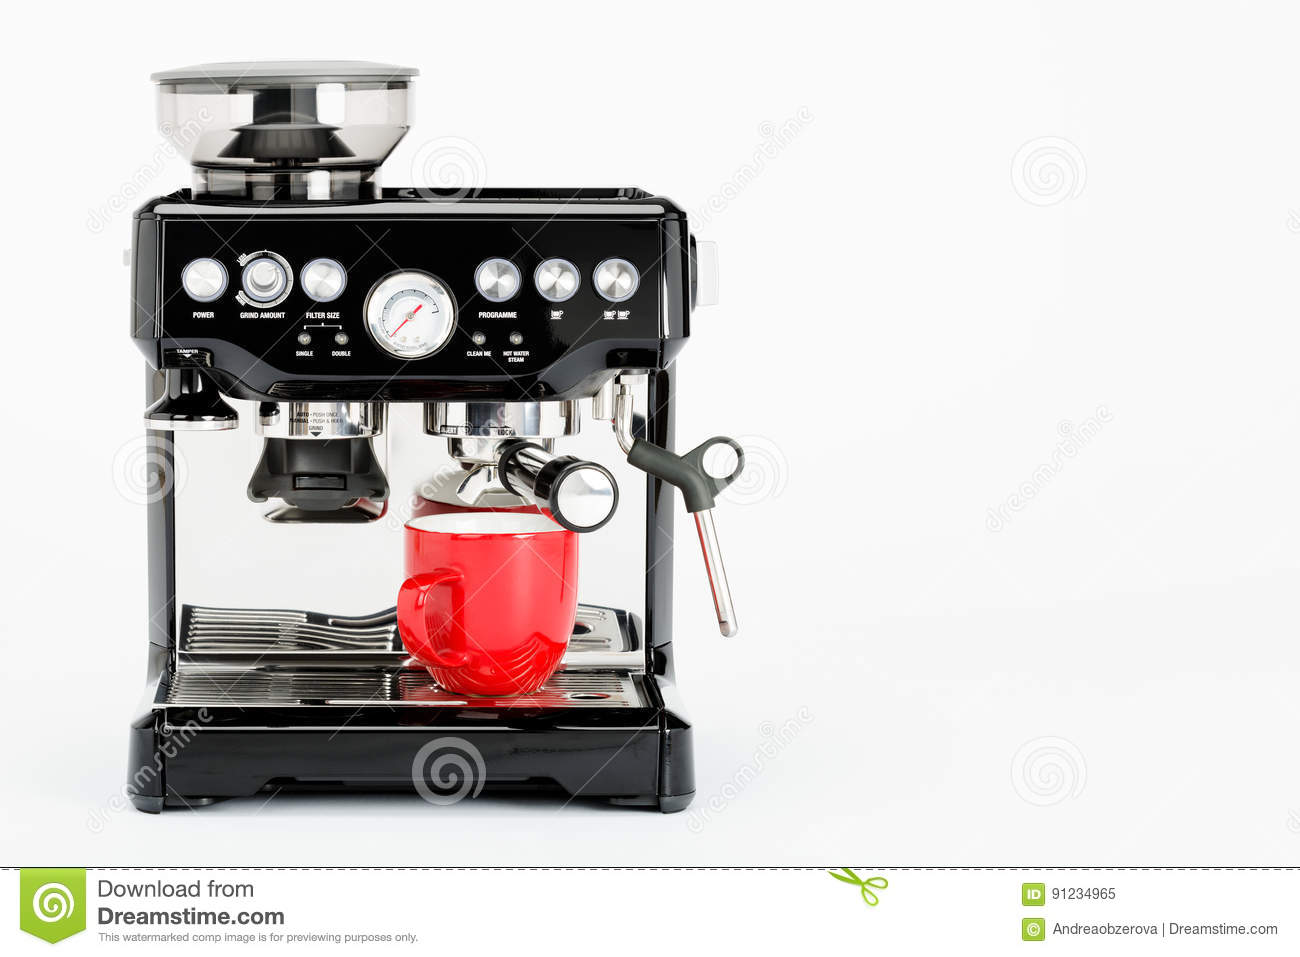 Crofton Coffee Maker With Grinder Instructions : Isolated Black Manual Coffee Maker With Grinder And Red Coffee Mug On A White Background Stock ...